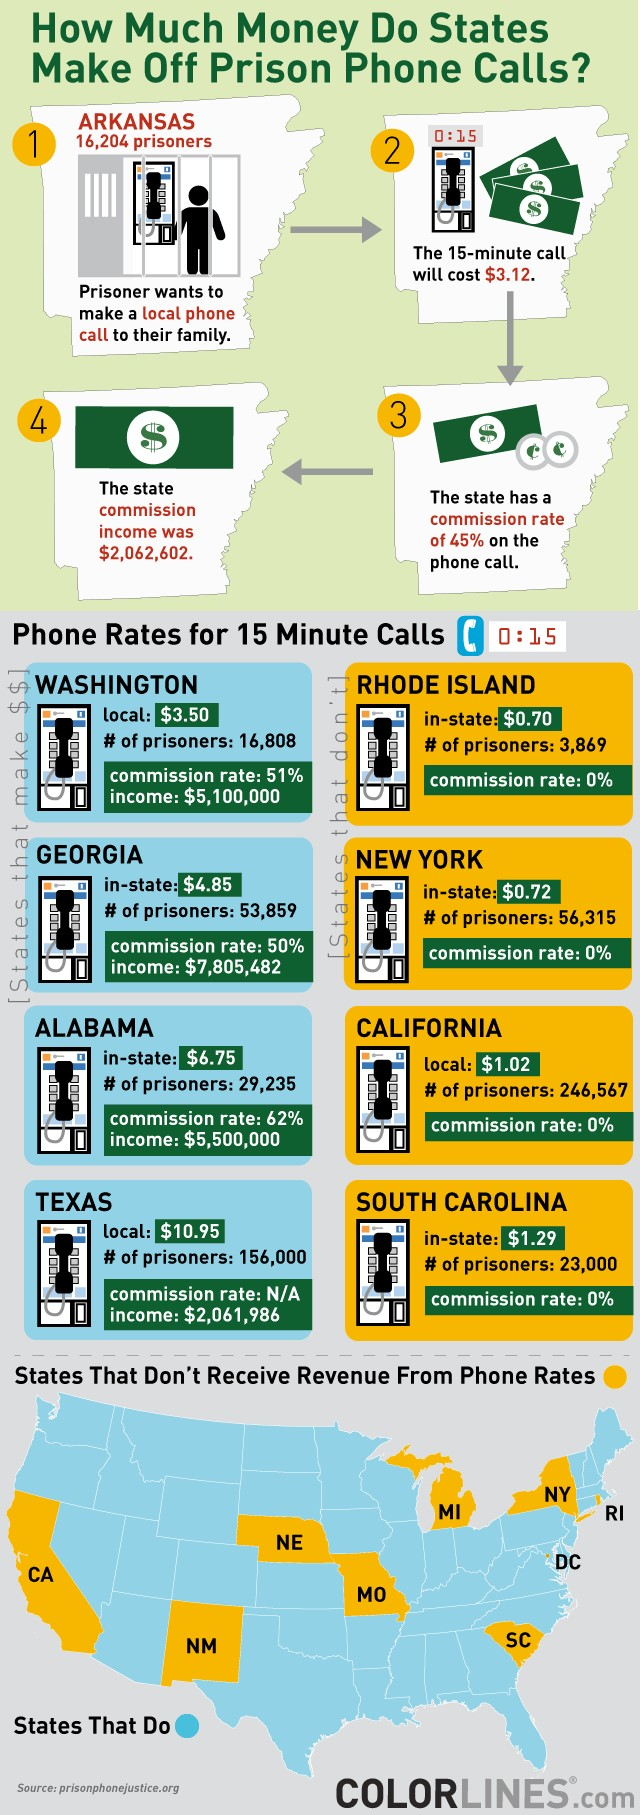 Prison Phone Call Graphics